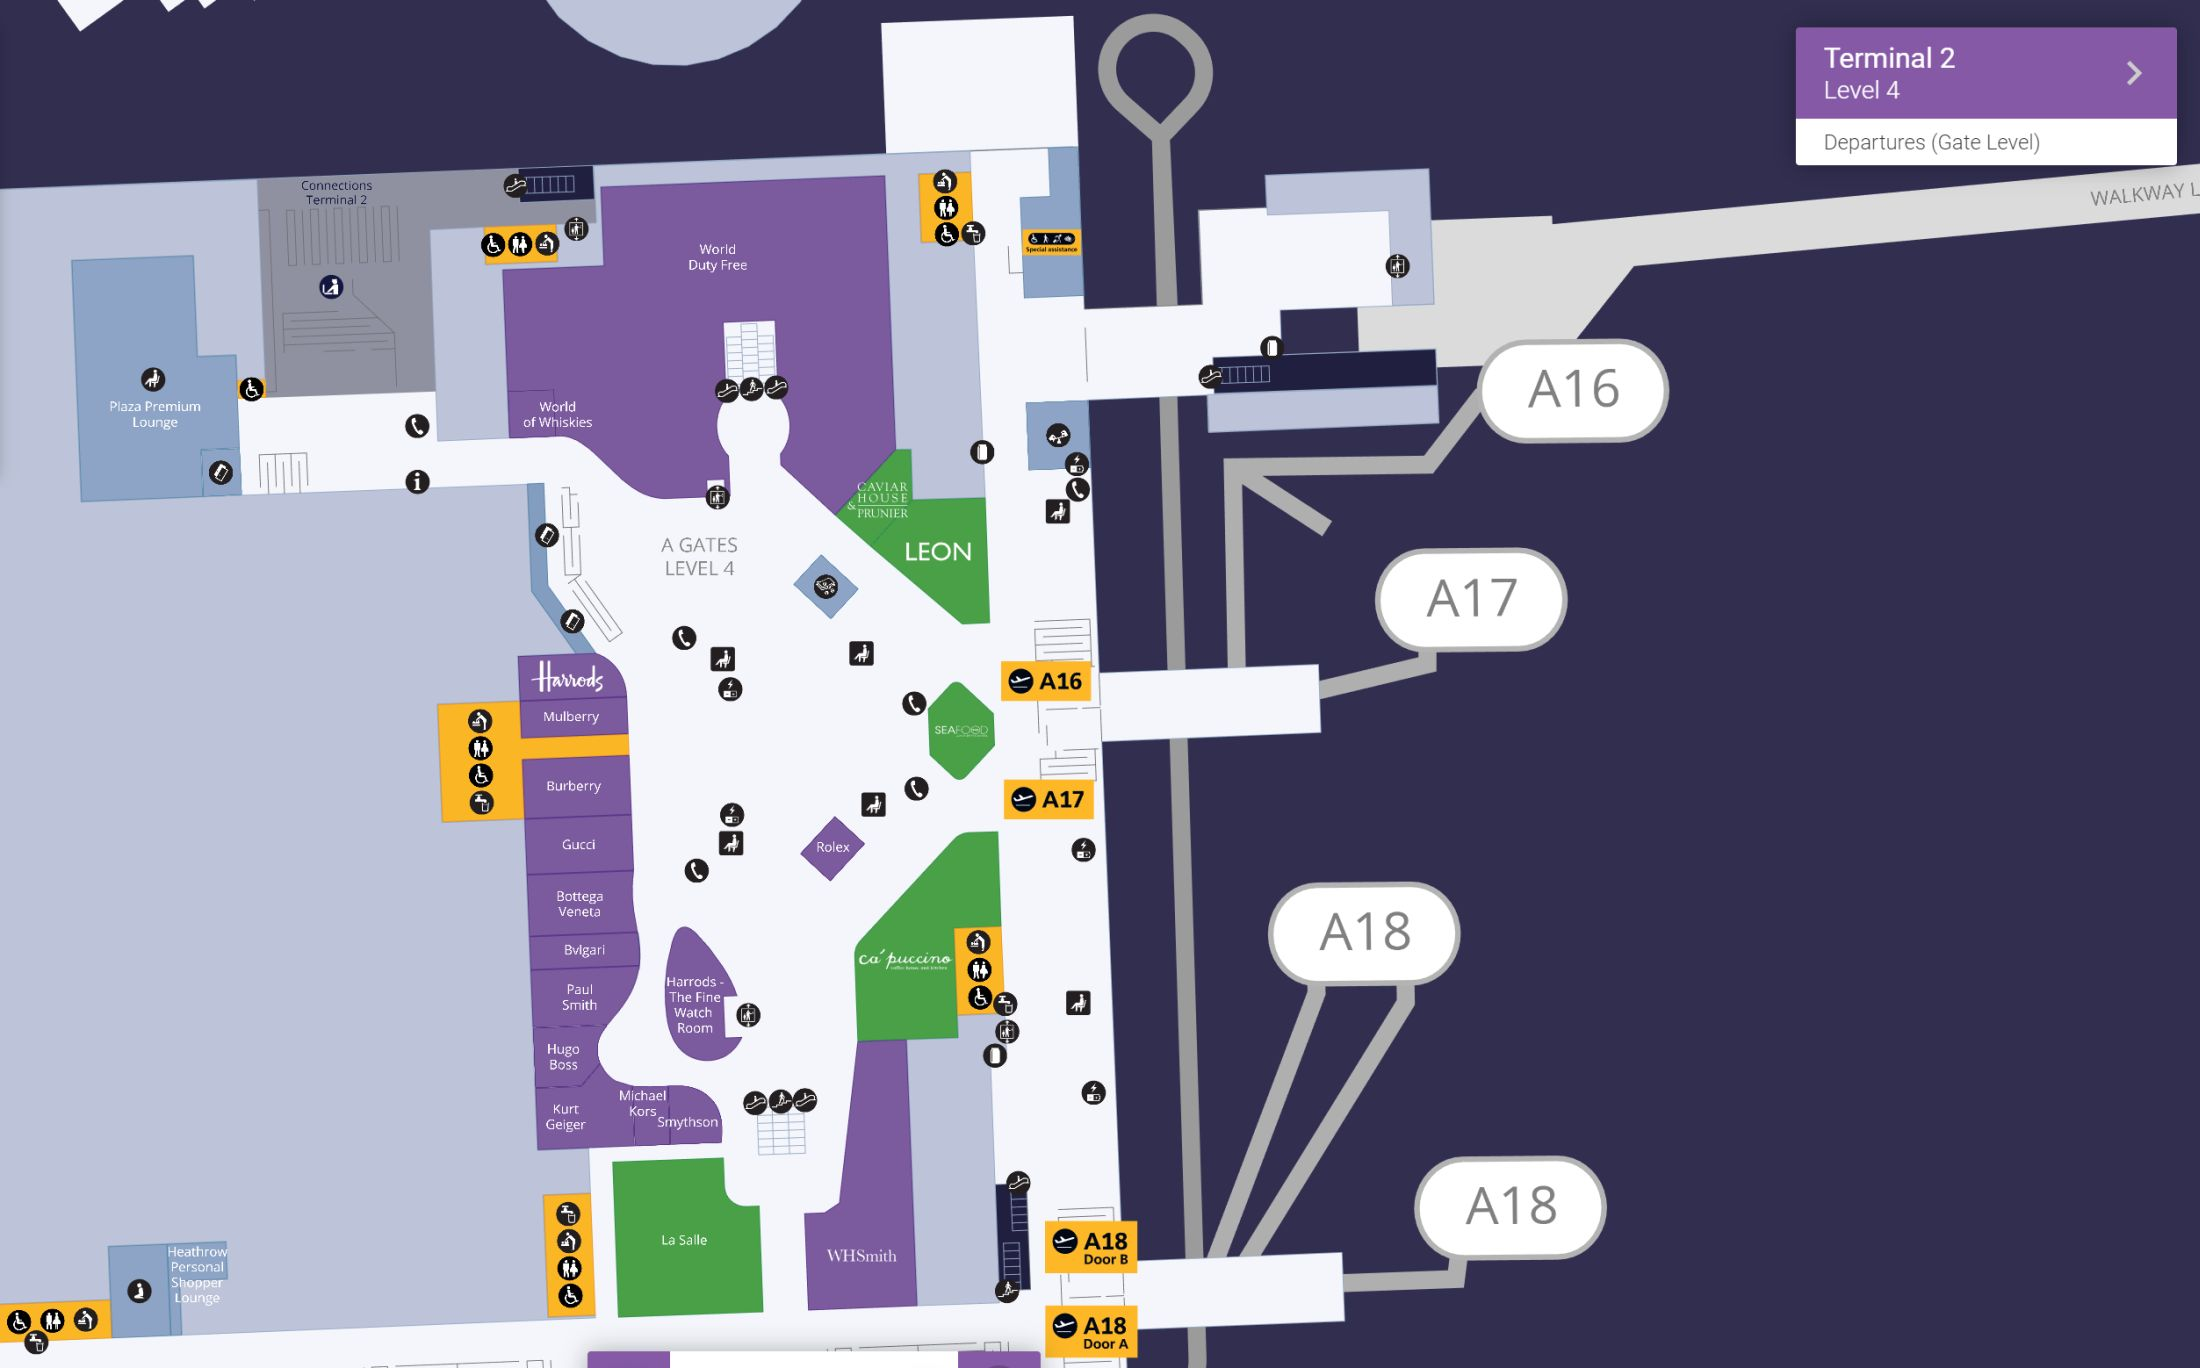 lhr terminal 2 map - gate to adventures